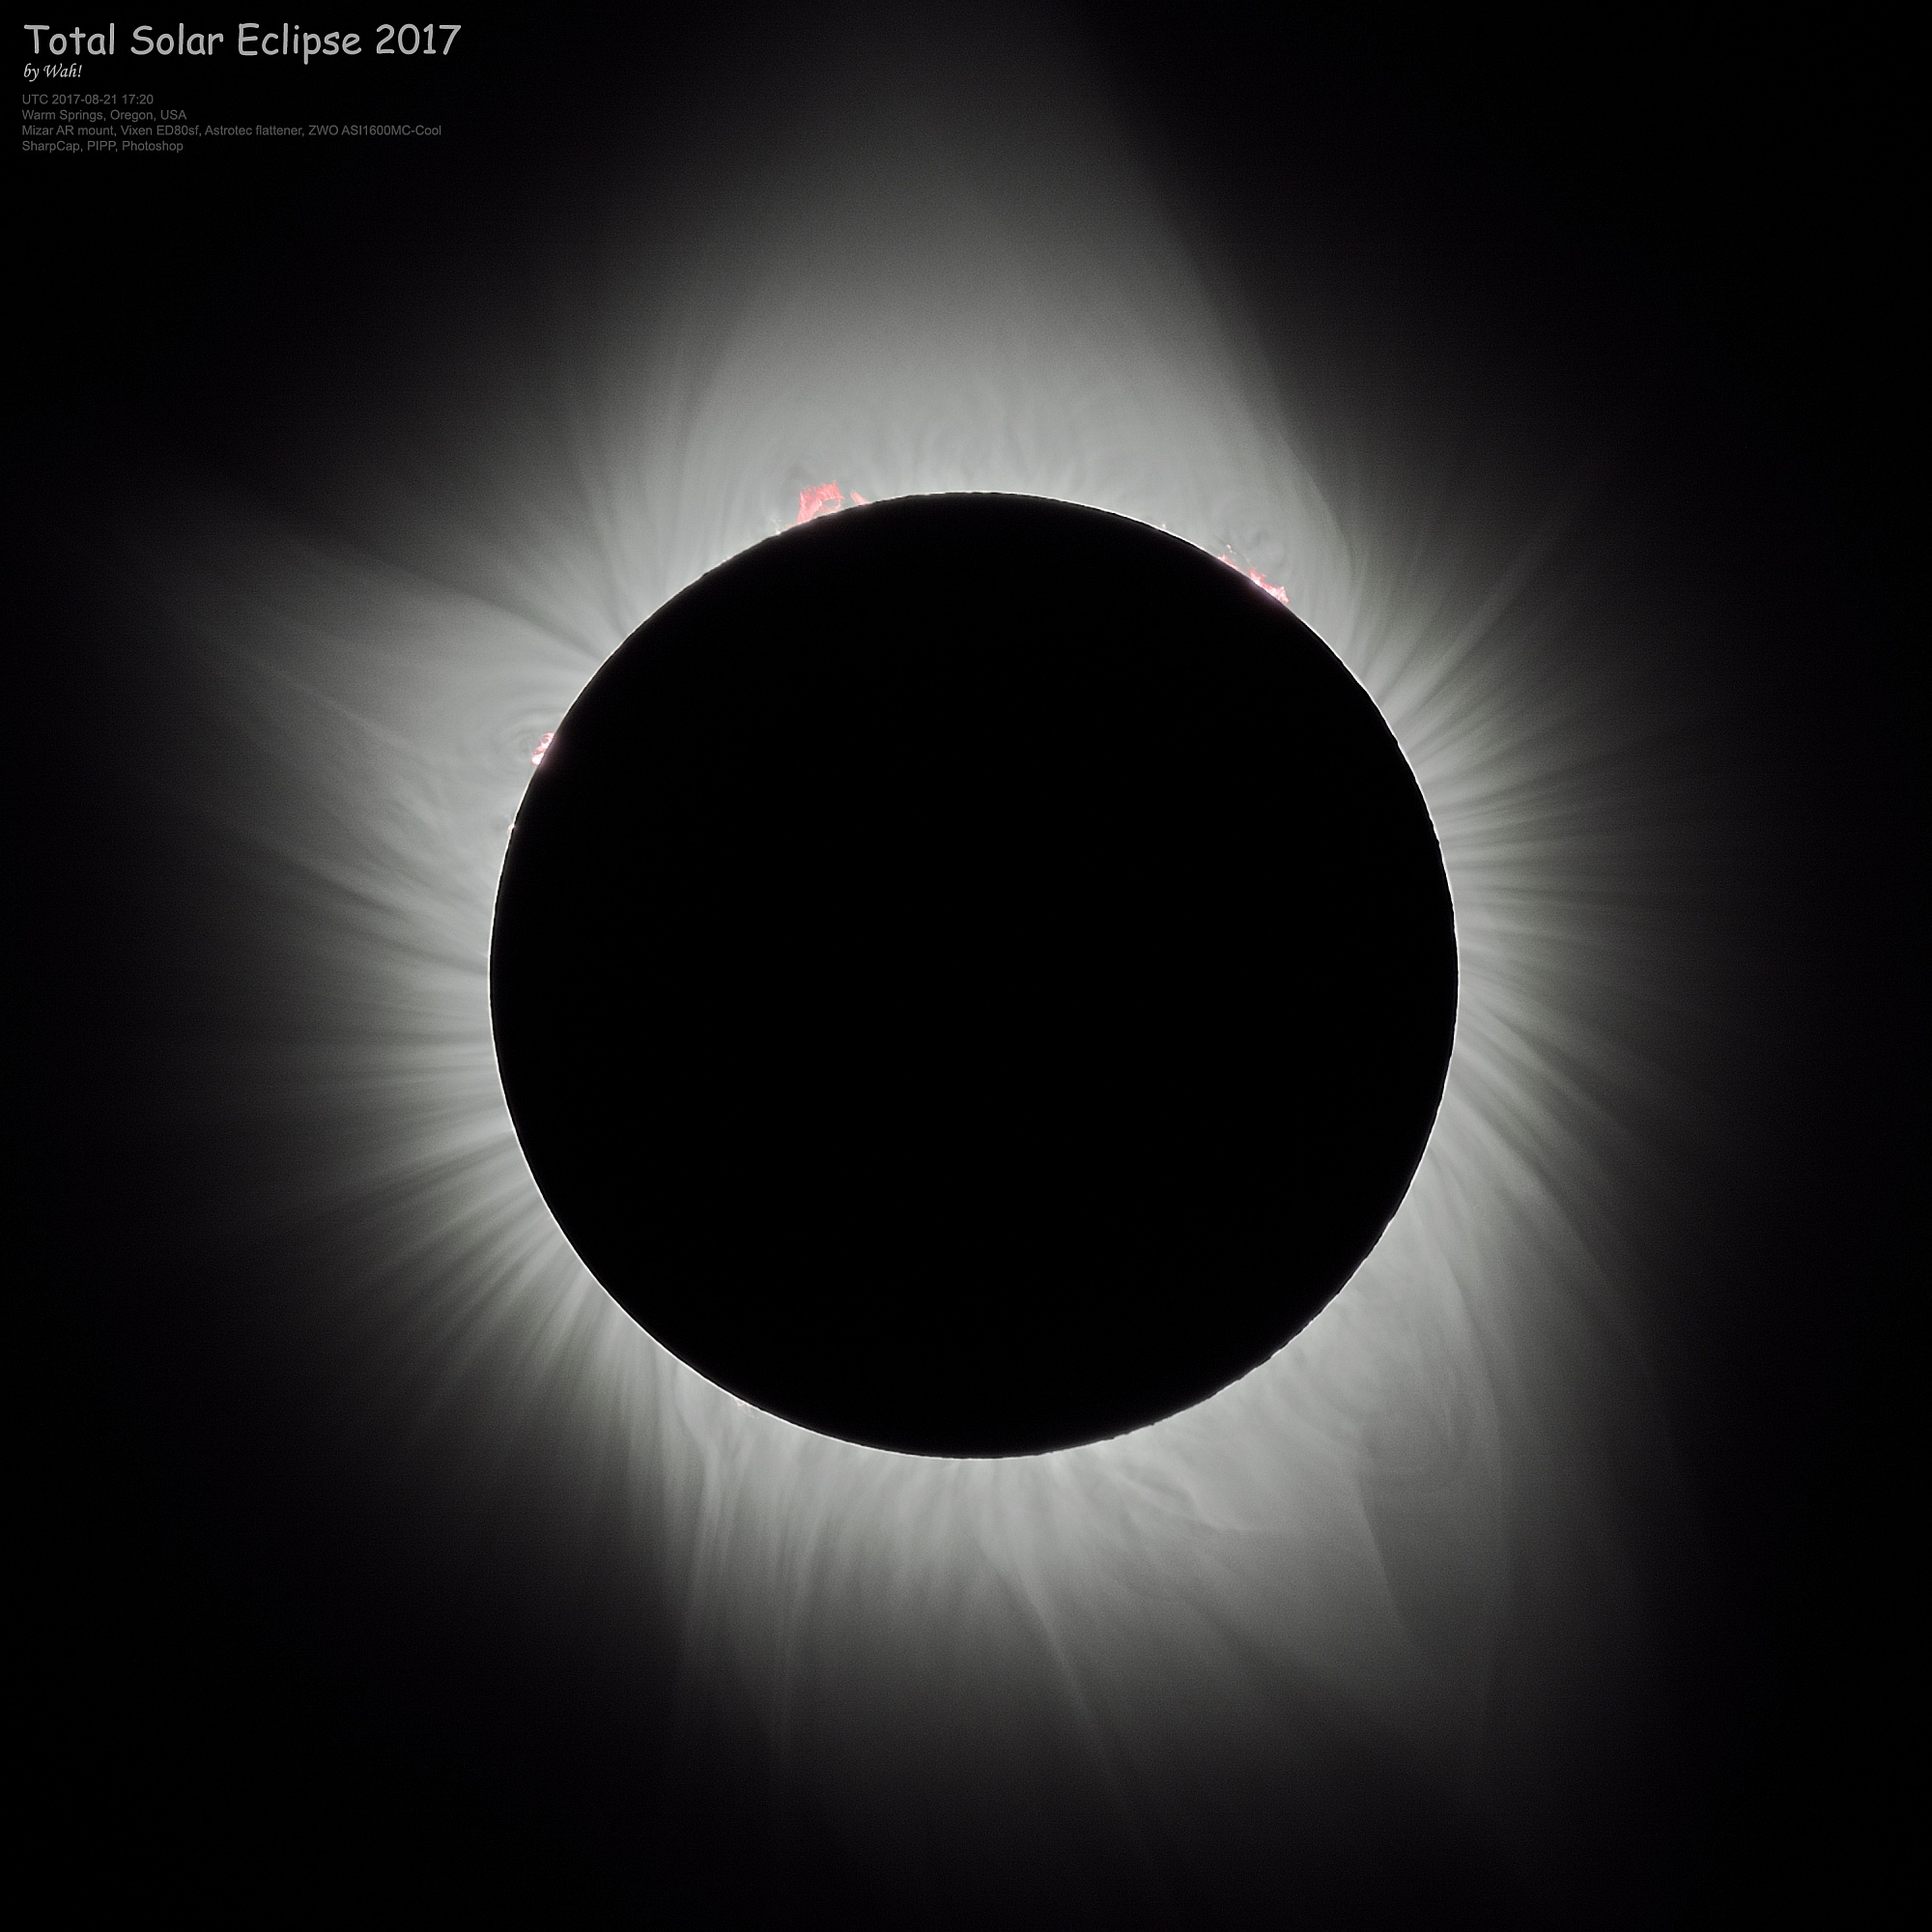 TotalSolarEclipse_ASI1600MC-Cool_20170821_Prominence2s.jpg